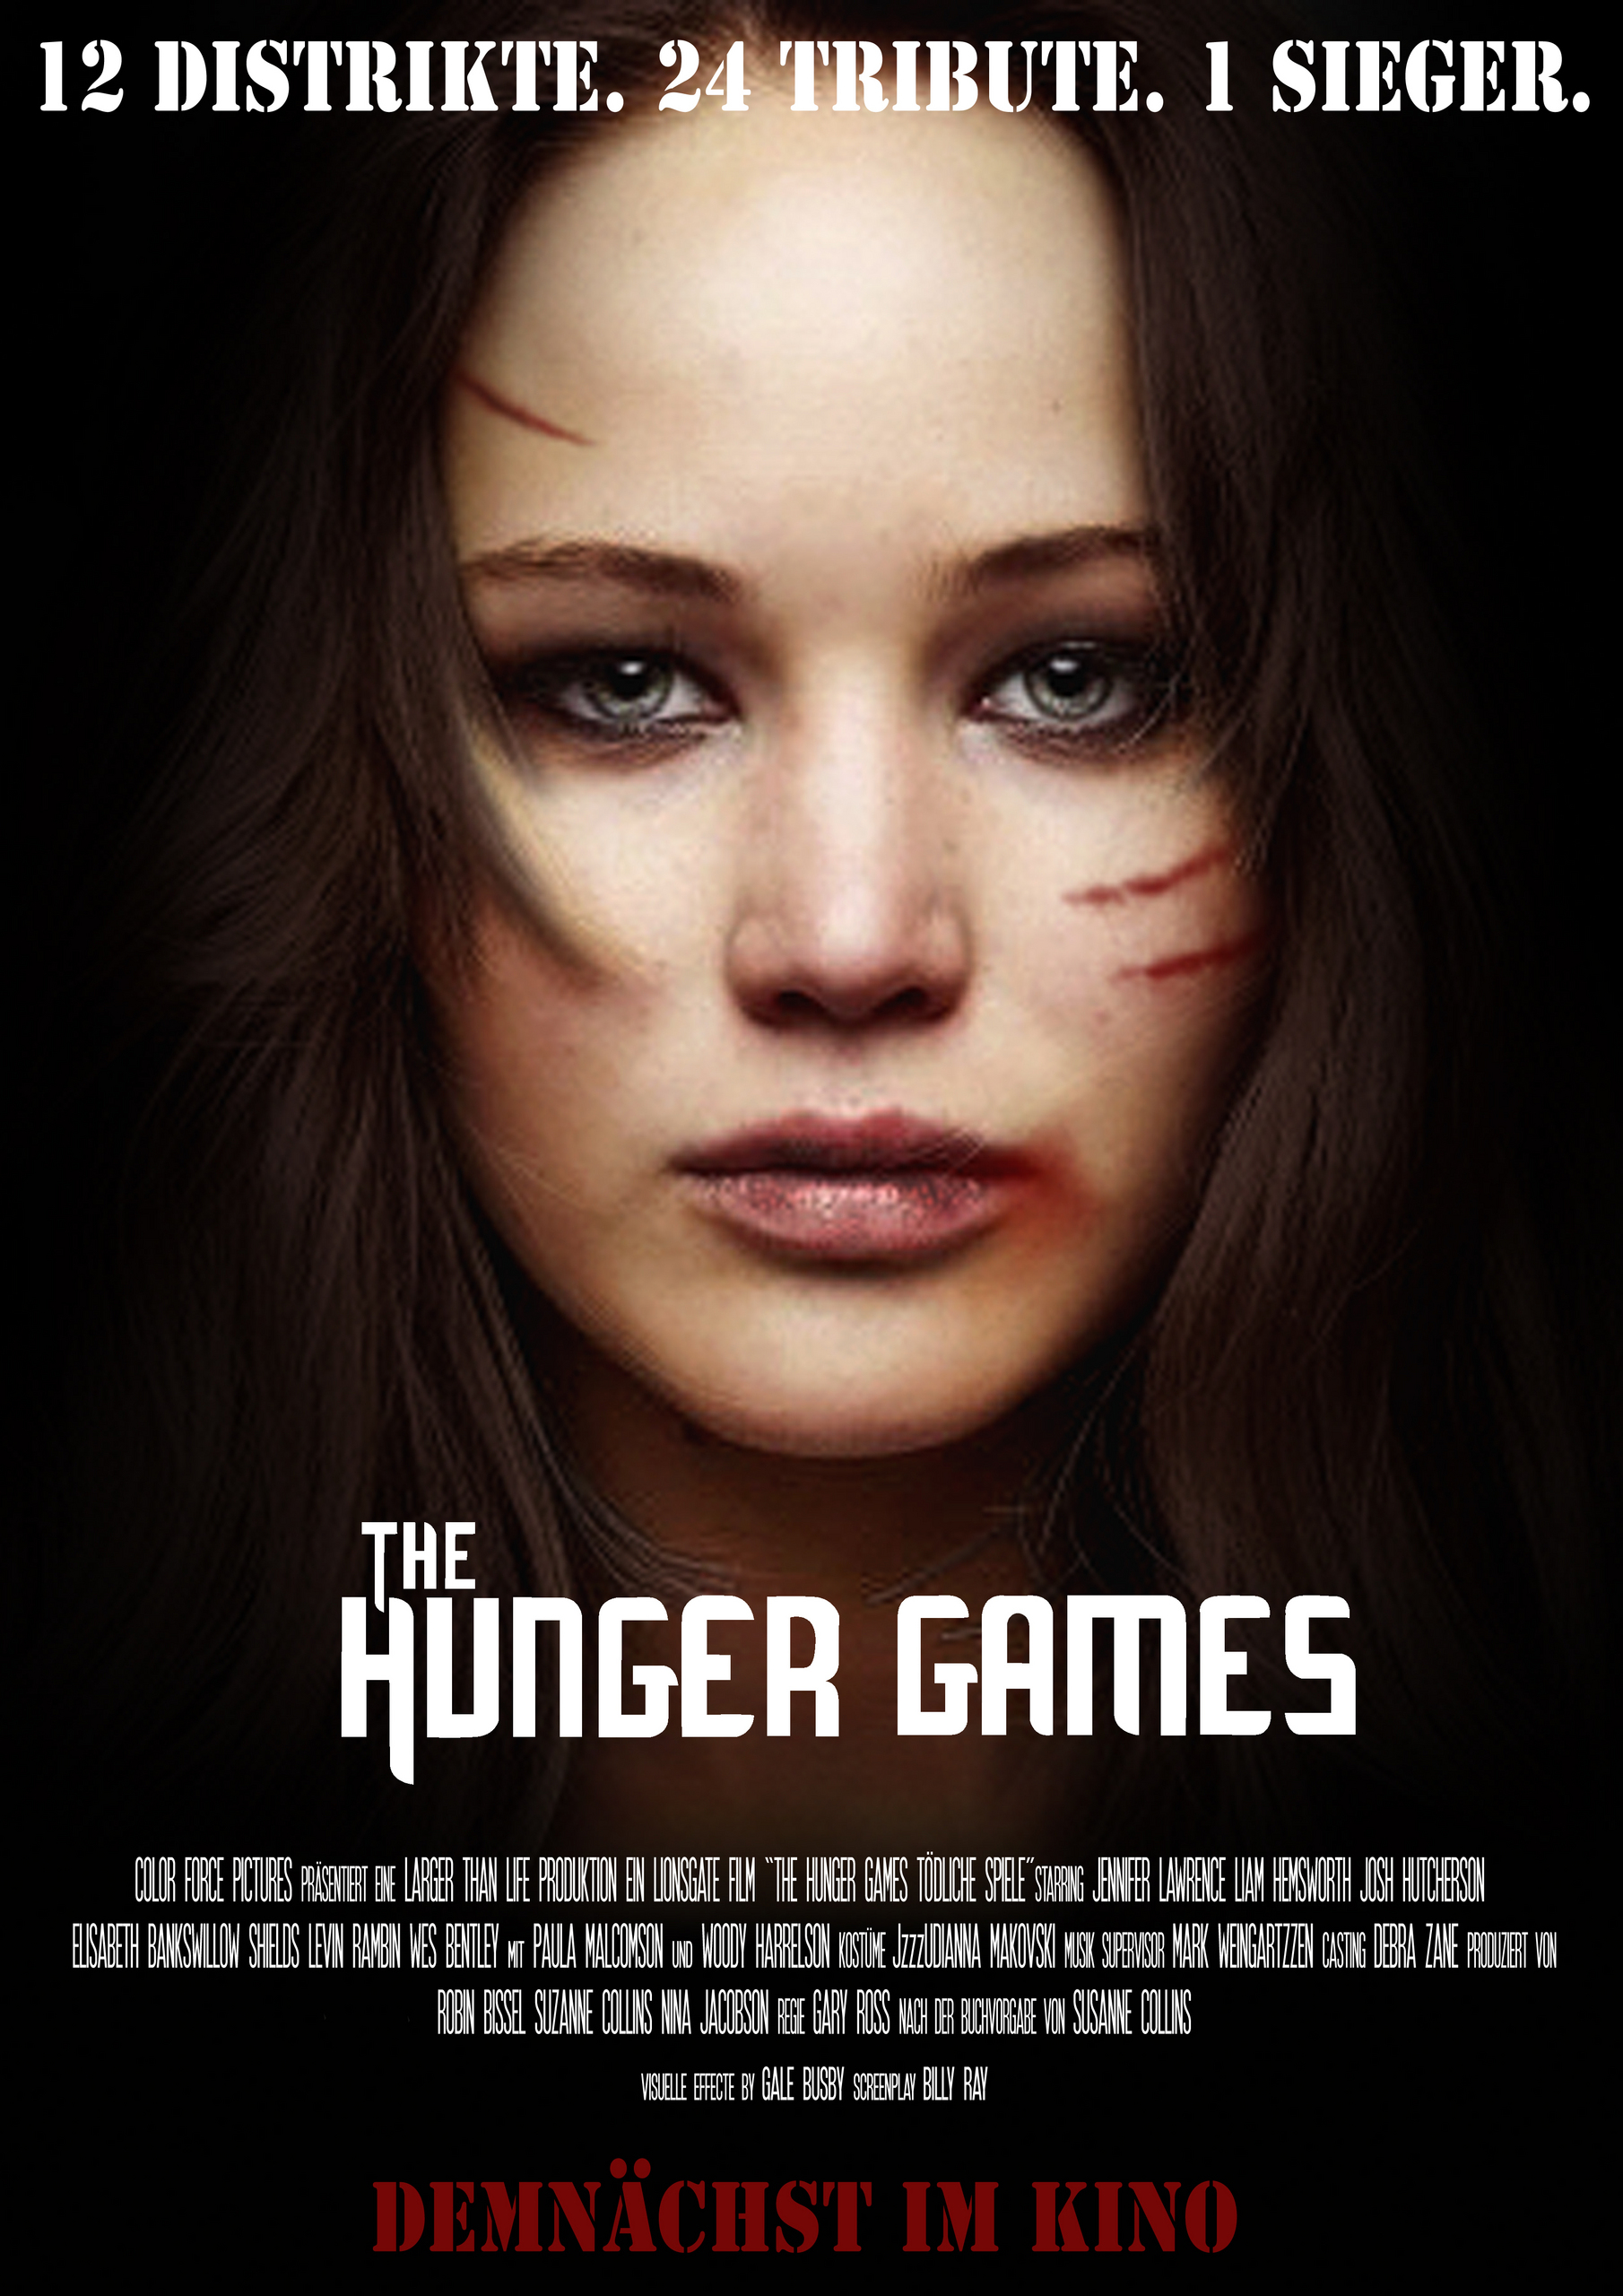 The Hunger Games (Fanmade movie poster) - The Hunger Games Fan Art ...